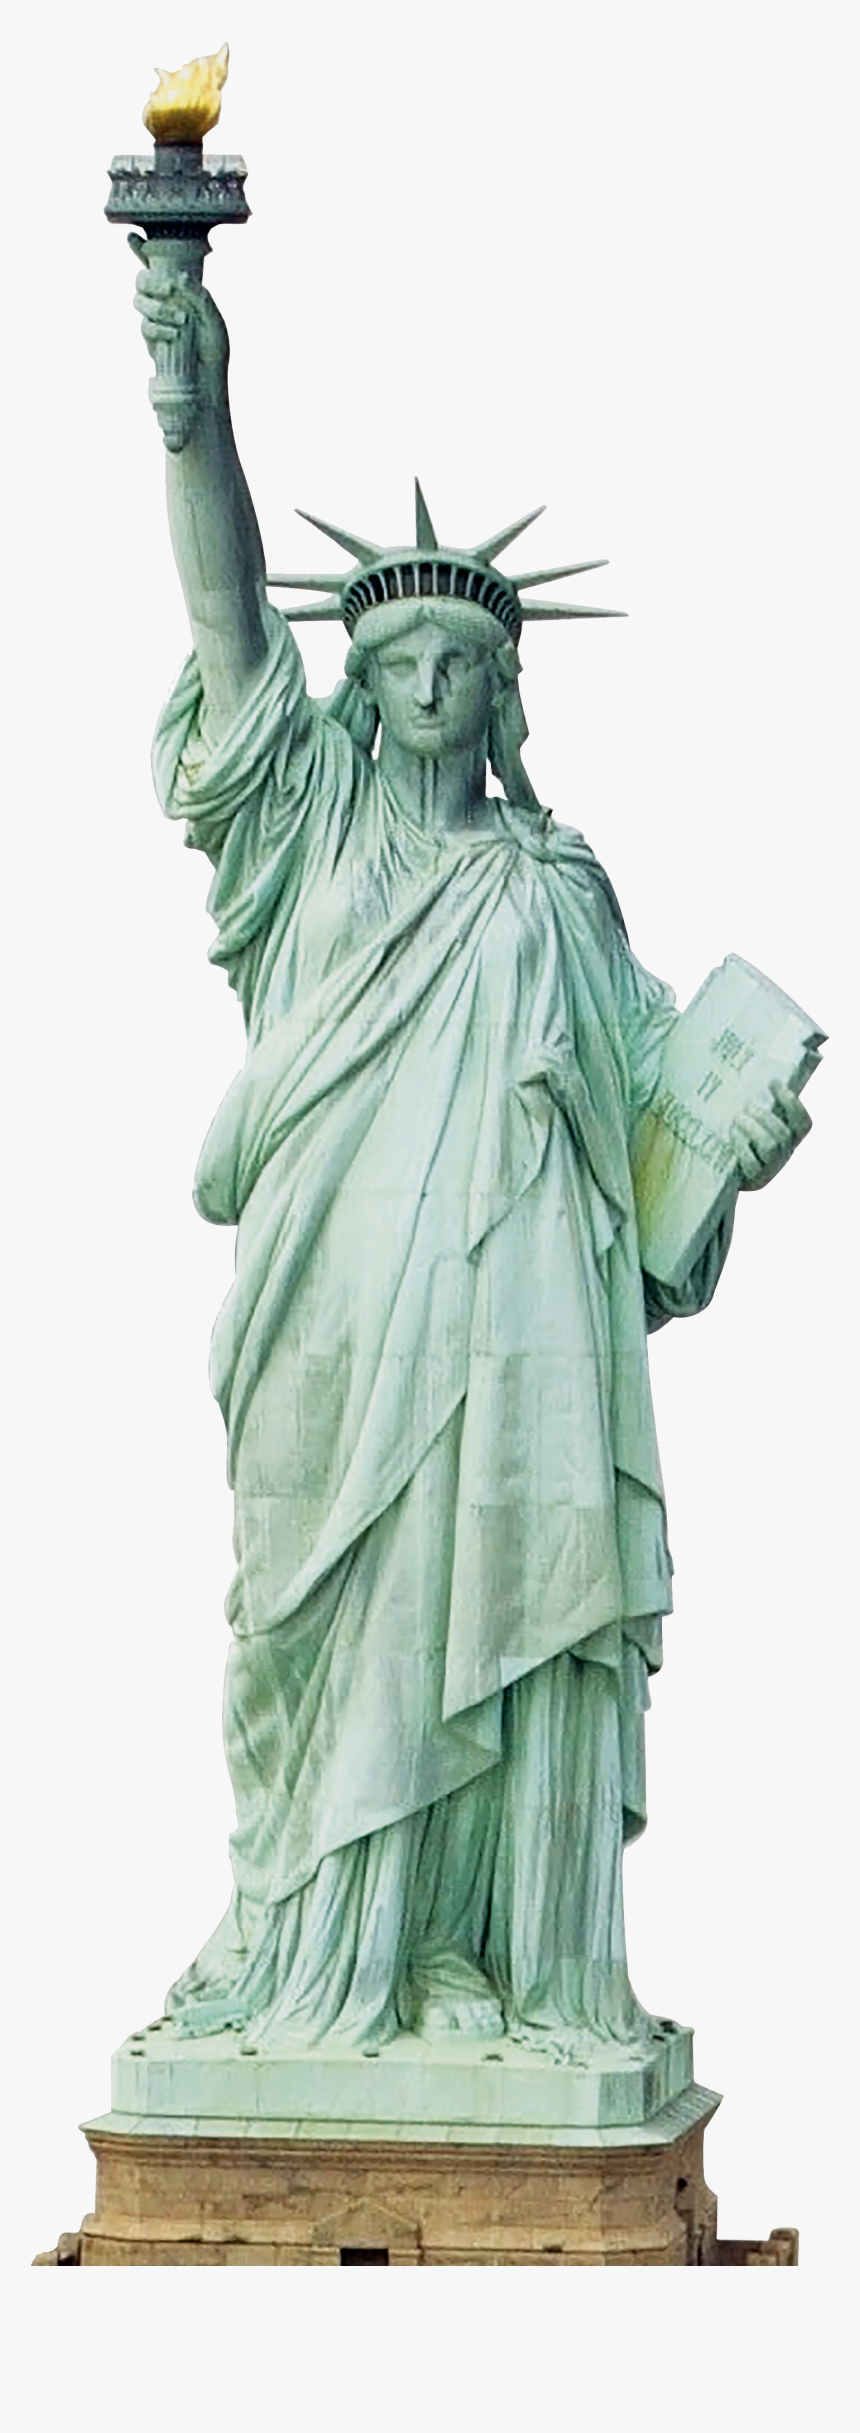 Statue Of Liberty, HD Png Download, Free Download